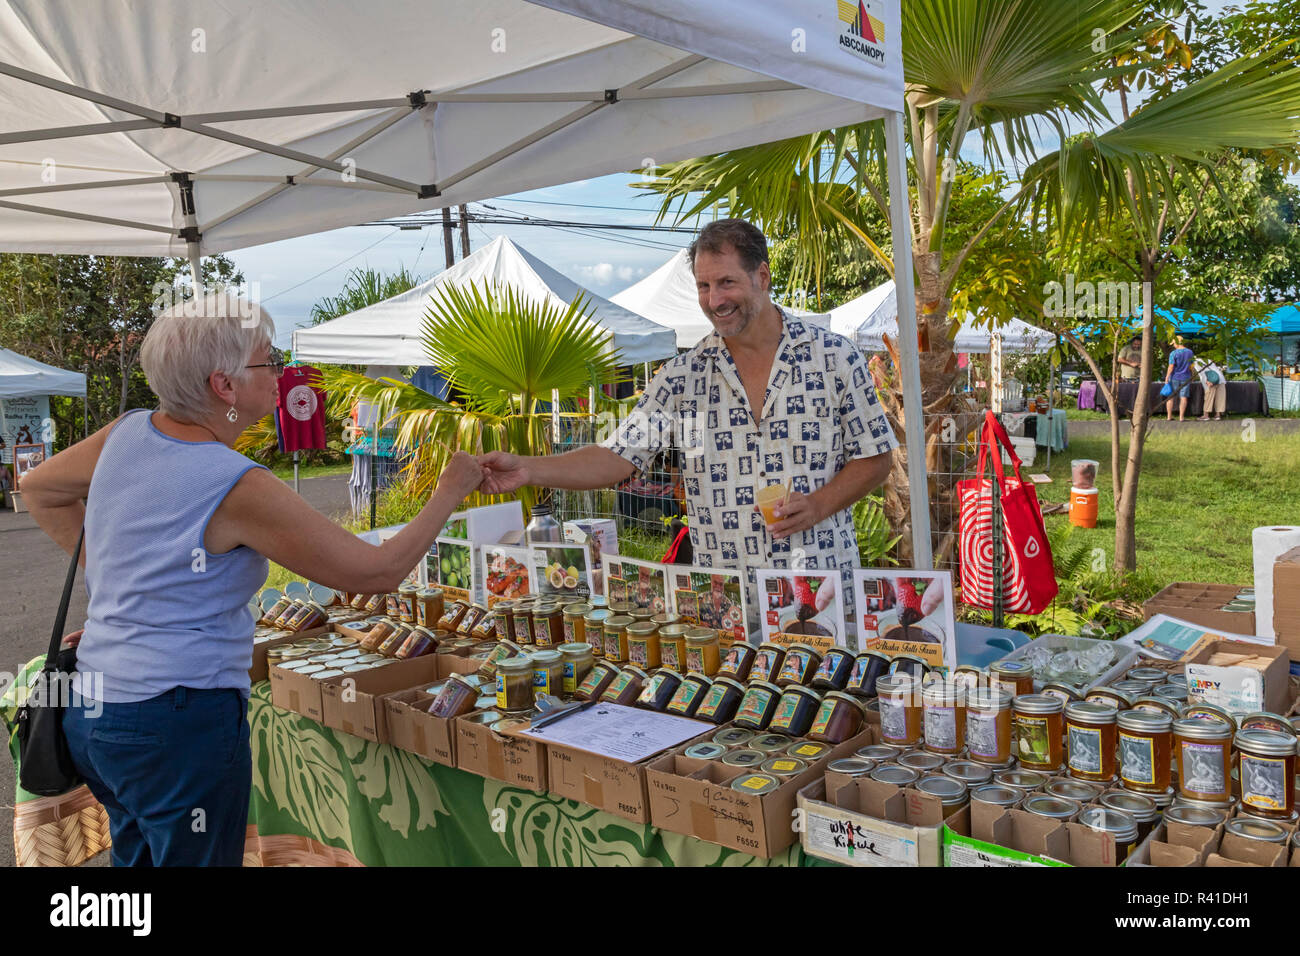 Captain Cook, Hawaii - A vendor offers a taste of locally-grown jam at the Pure Kona Green Market. - Stock Image